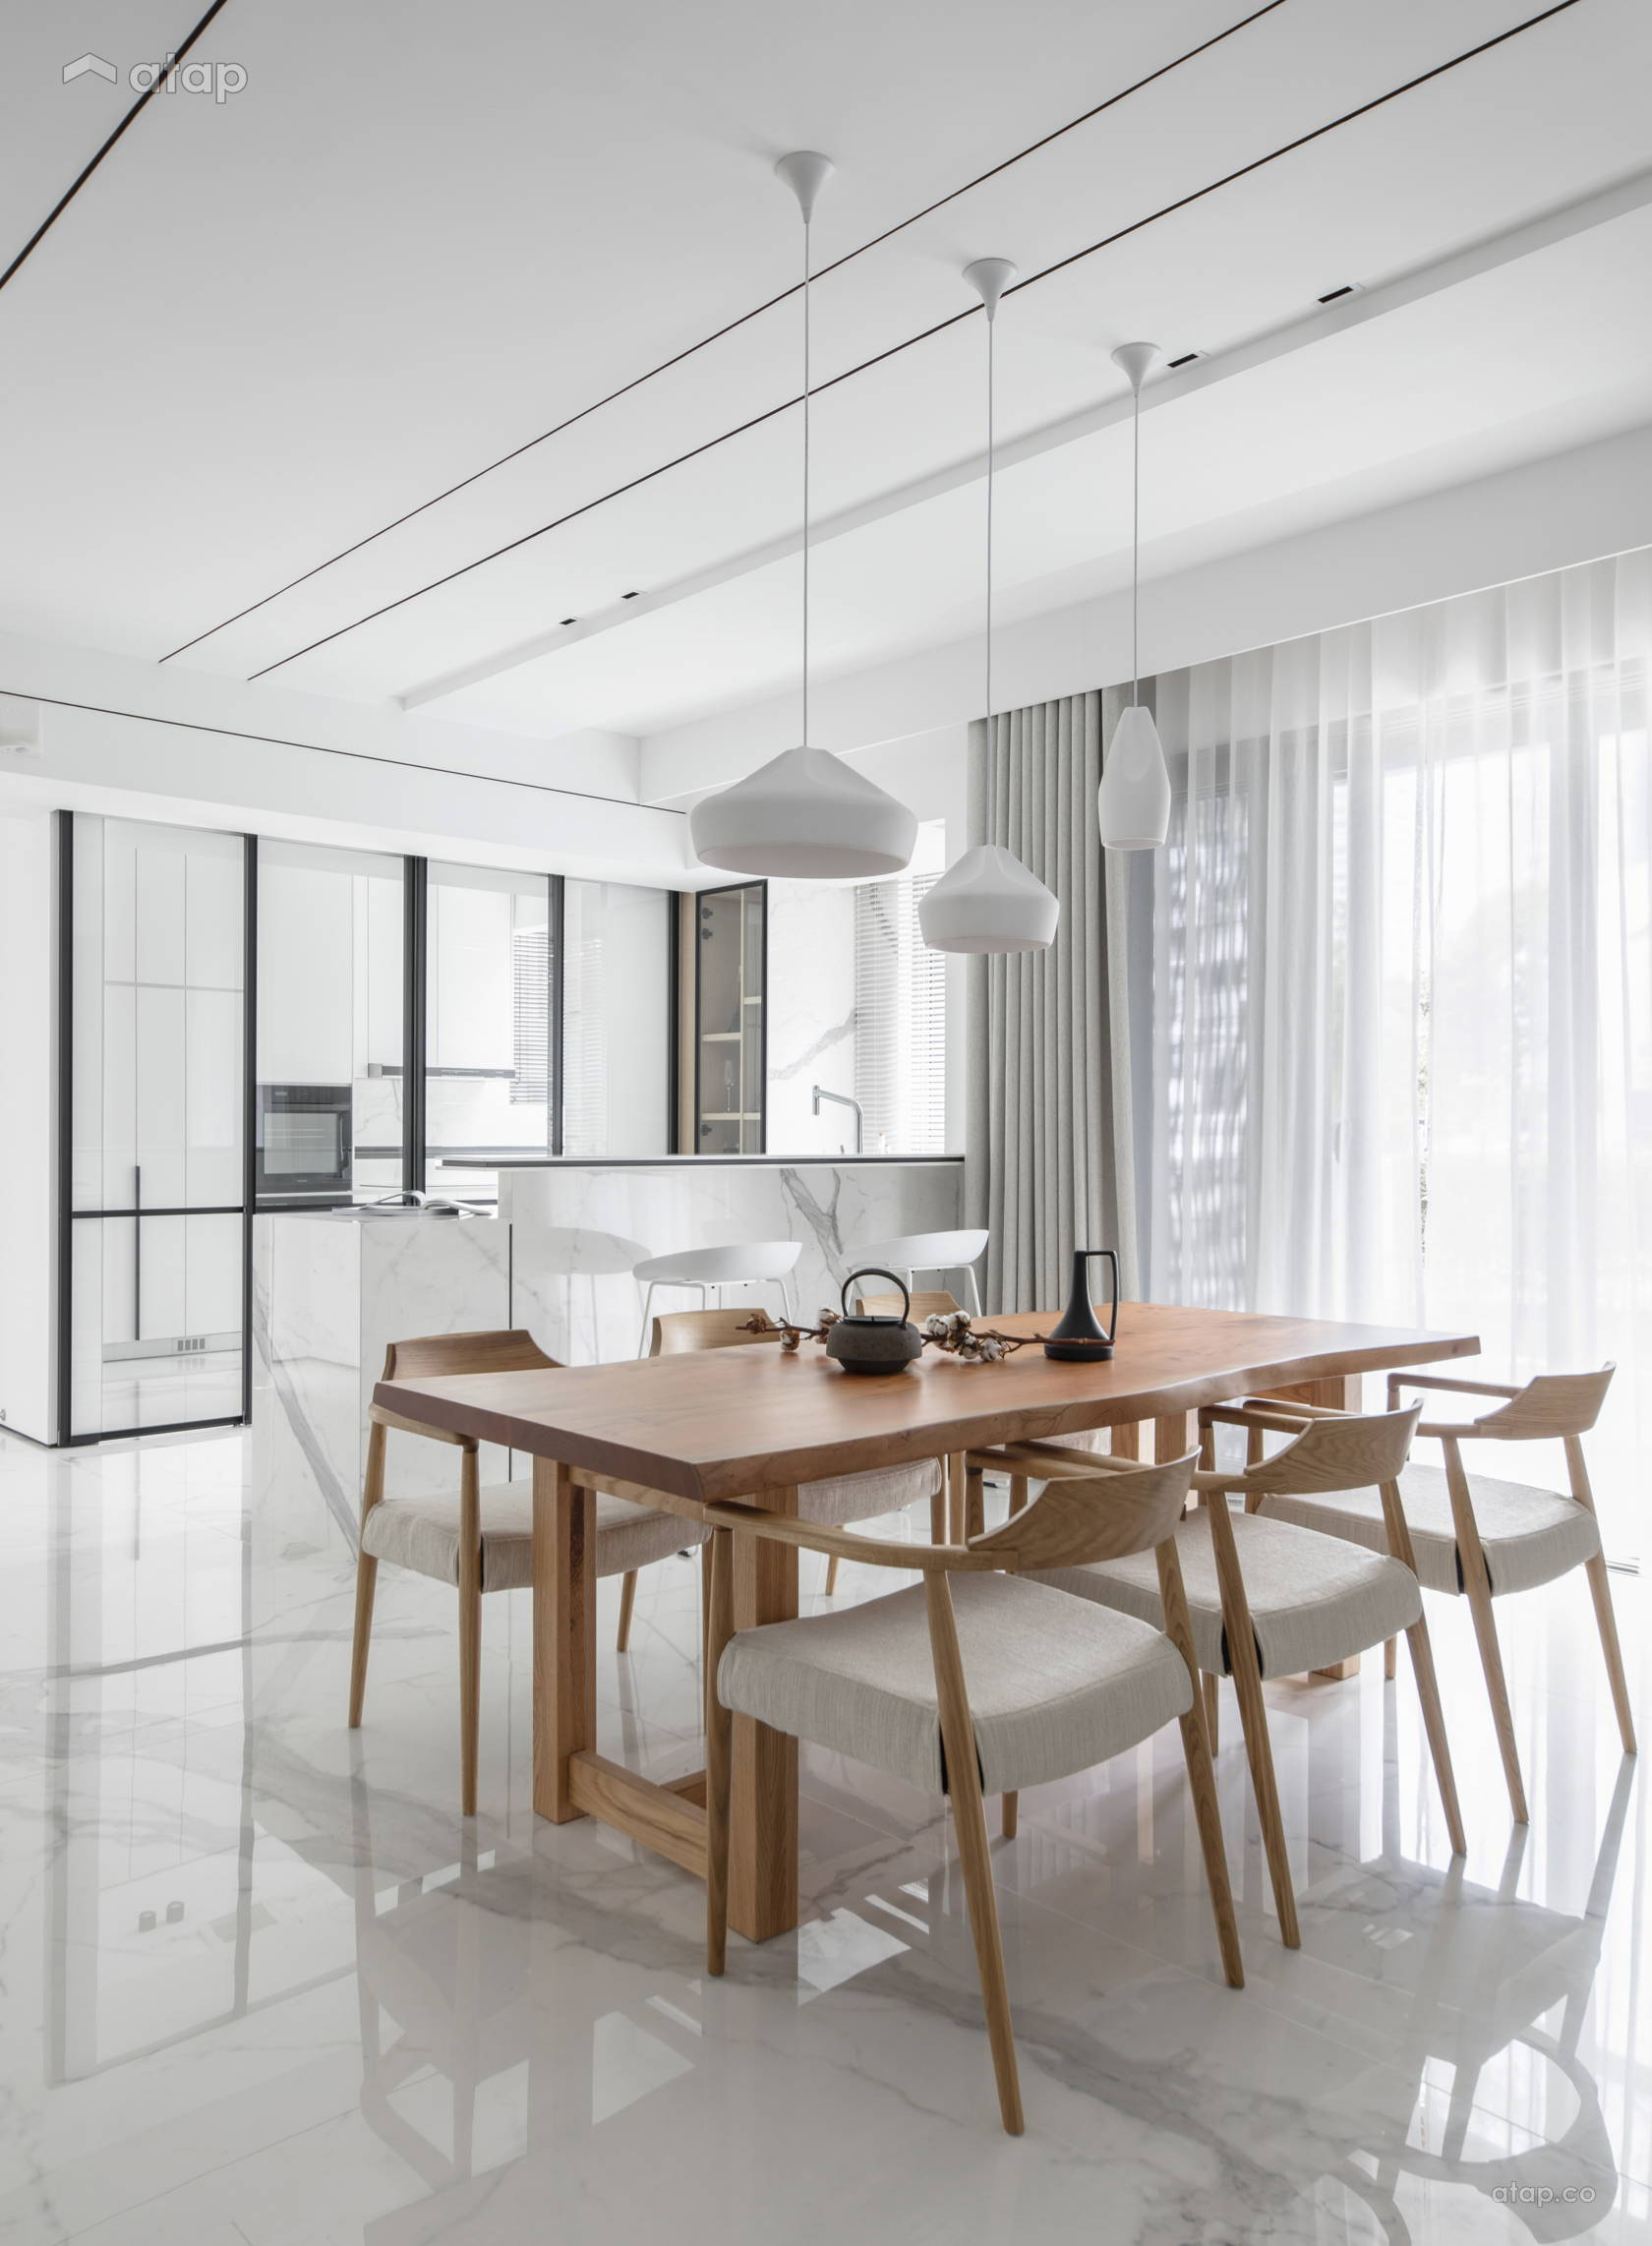 Minimalistic Modern Dining Room Kitchen @ THE IMPACT OF WHITE - Double Storey, Desa parkcity